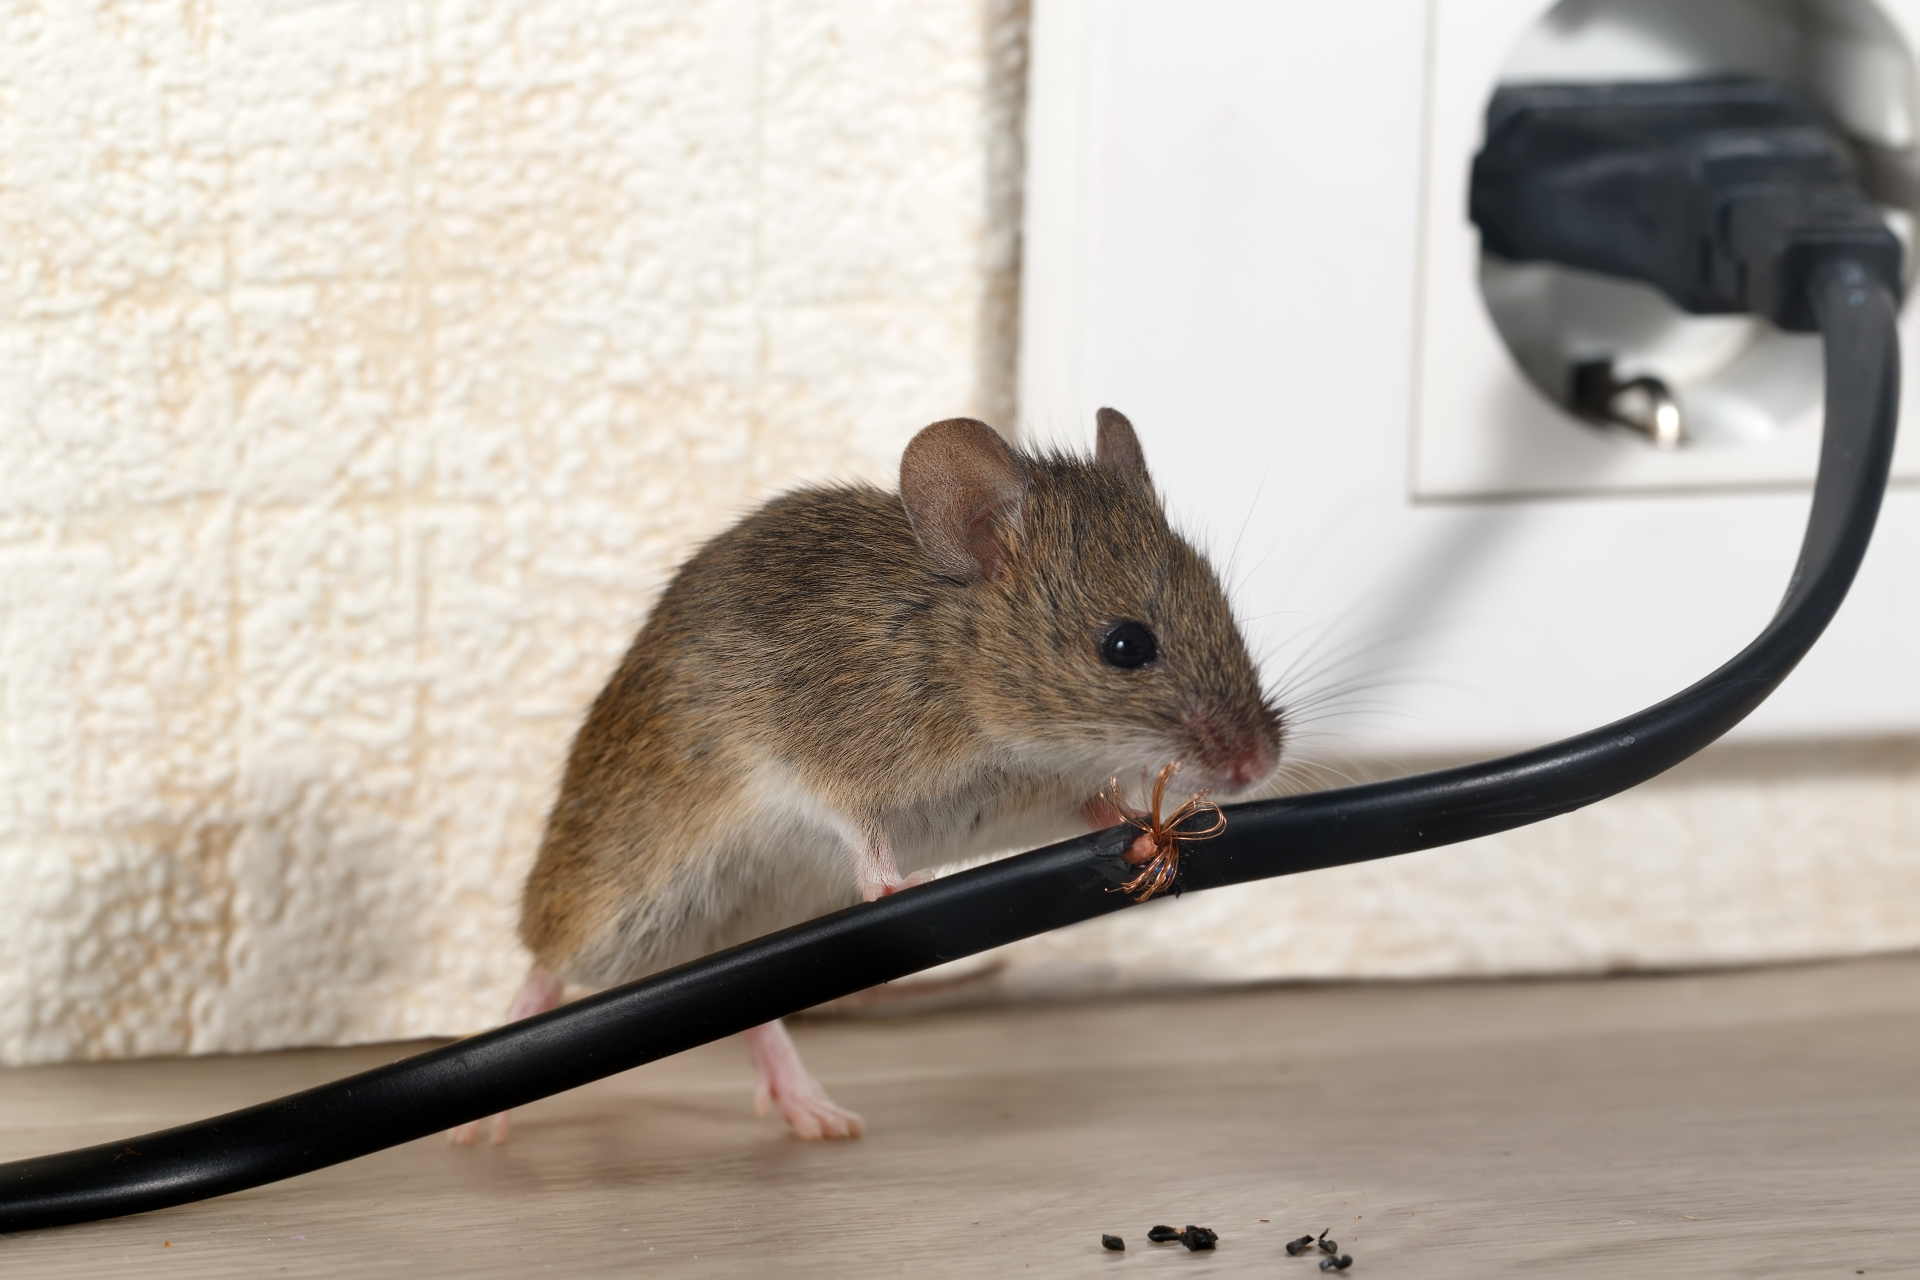 Mice Infestation, Pest Control in Archway, N19. Call Now 020 8166 9746